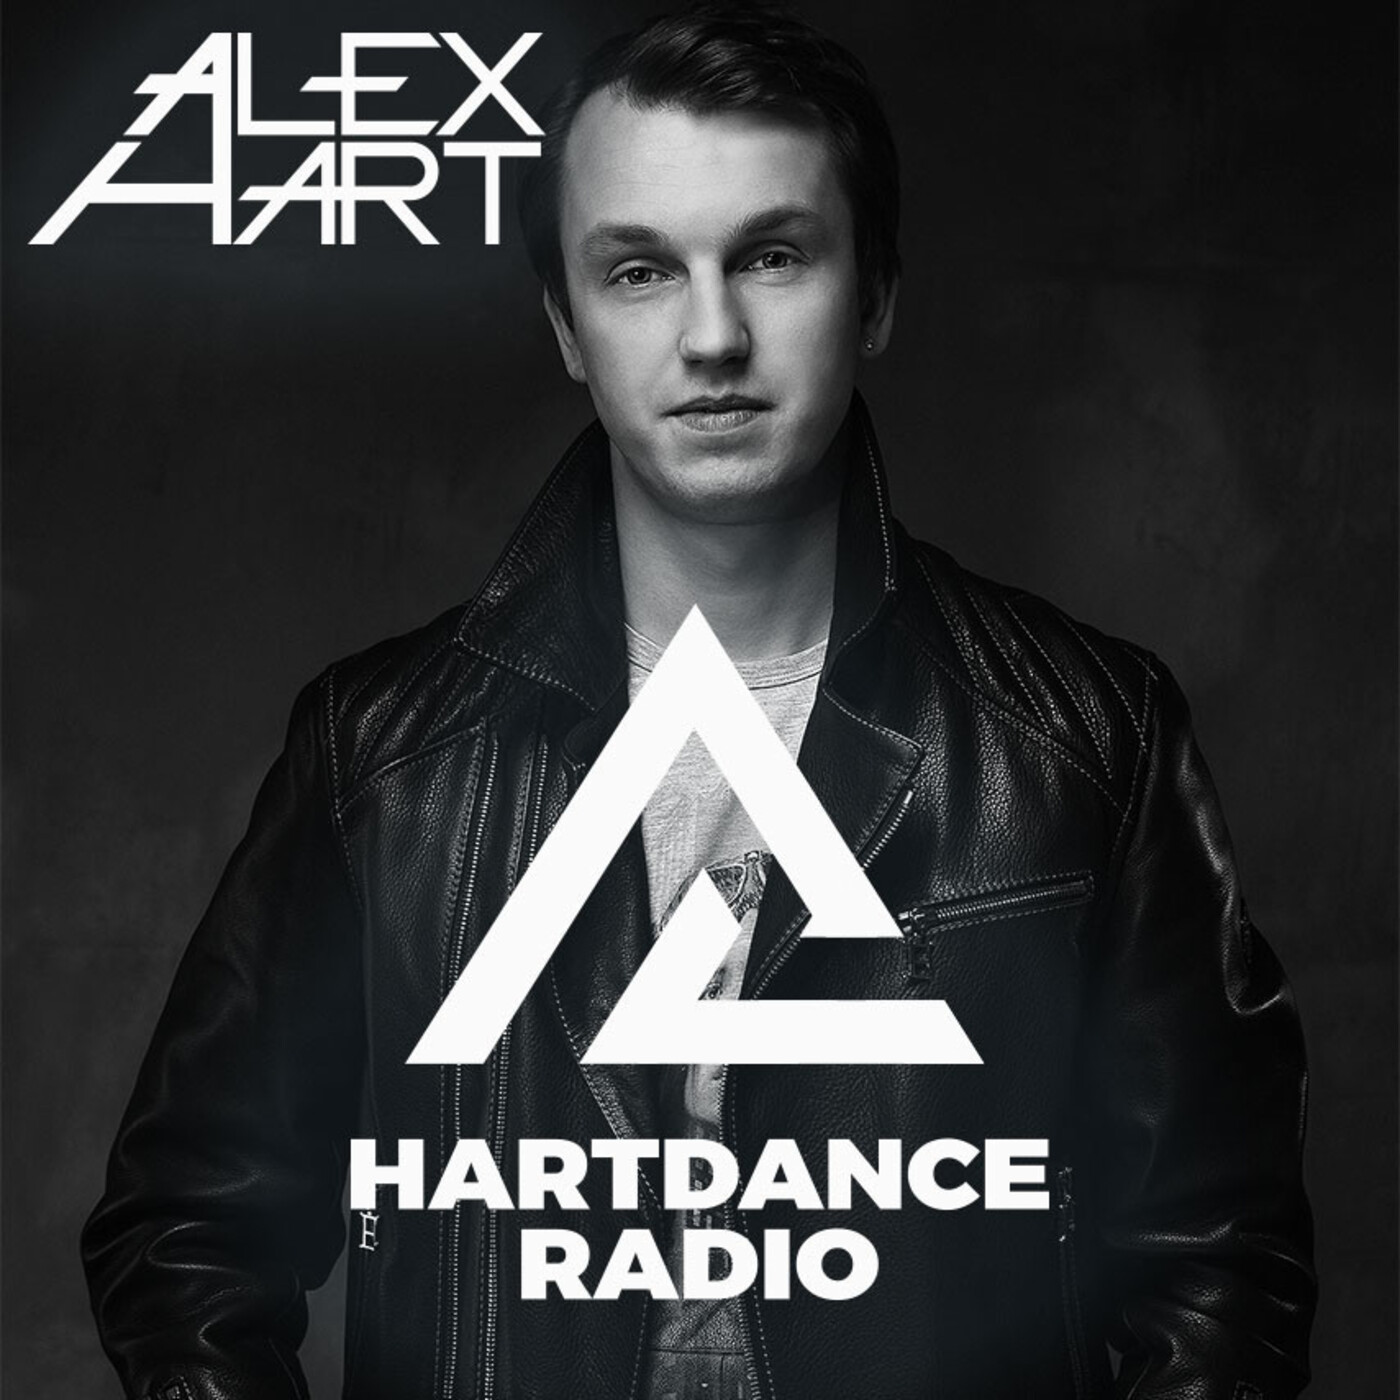 ALEX HART - HartDance Radio #26